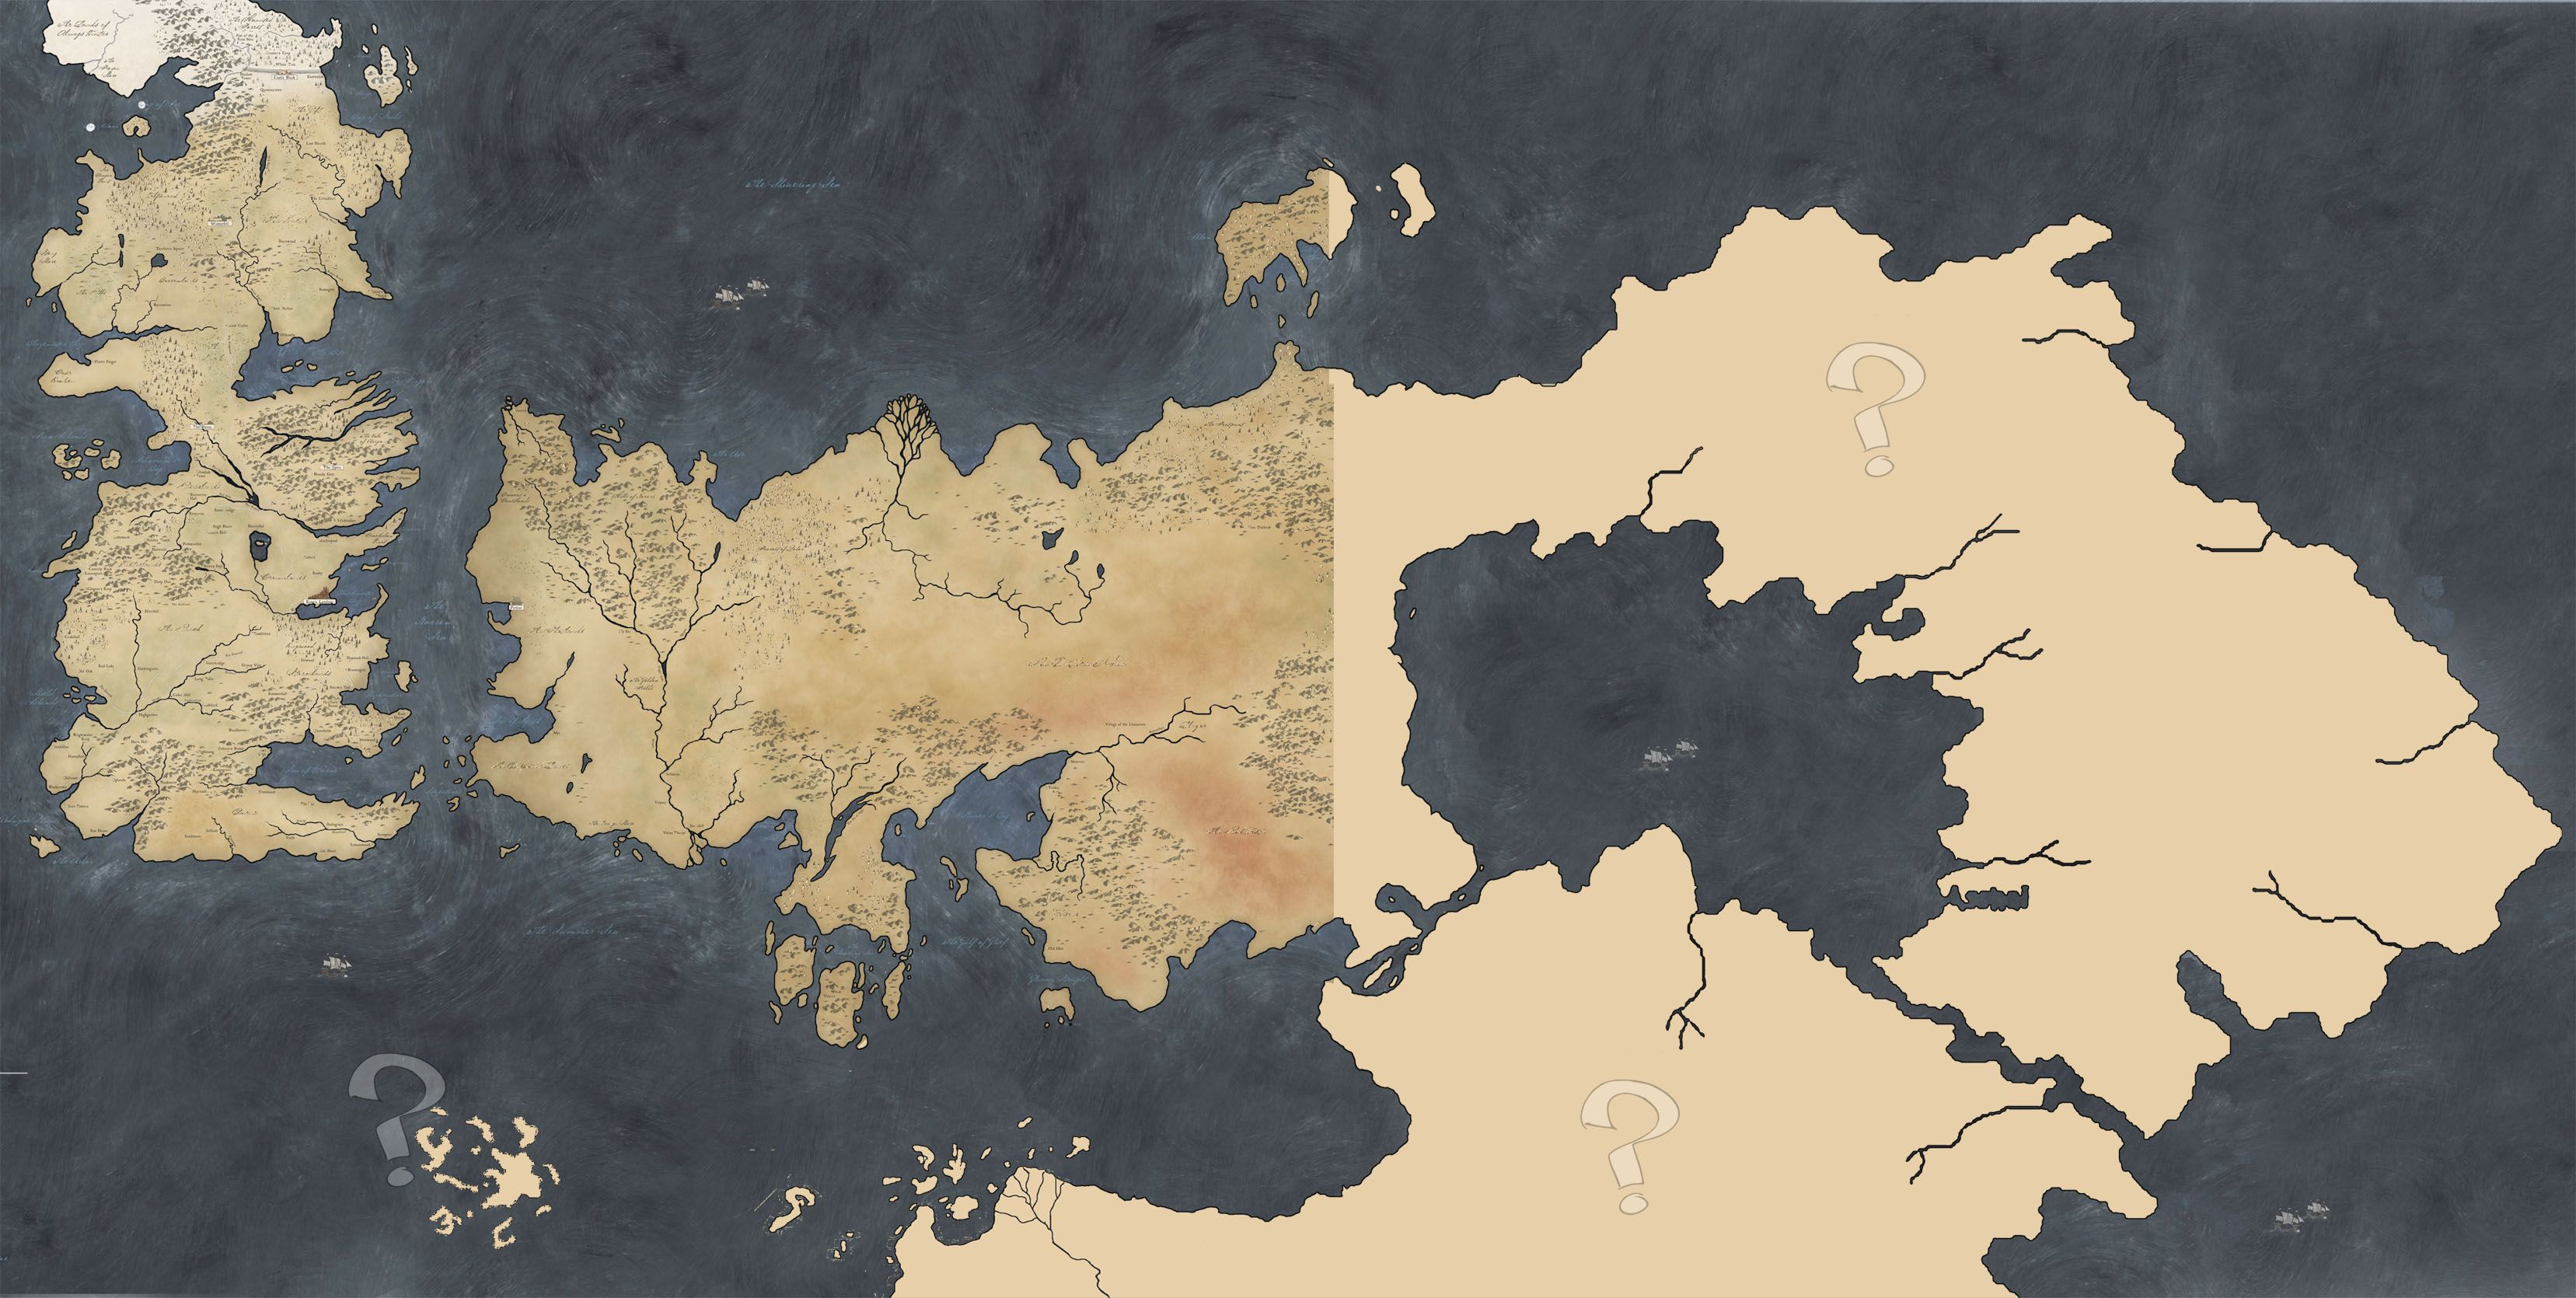 Westeros Karte Hd.Game Of Thrones Map Wallpapers Top Free Game Of Thrones